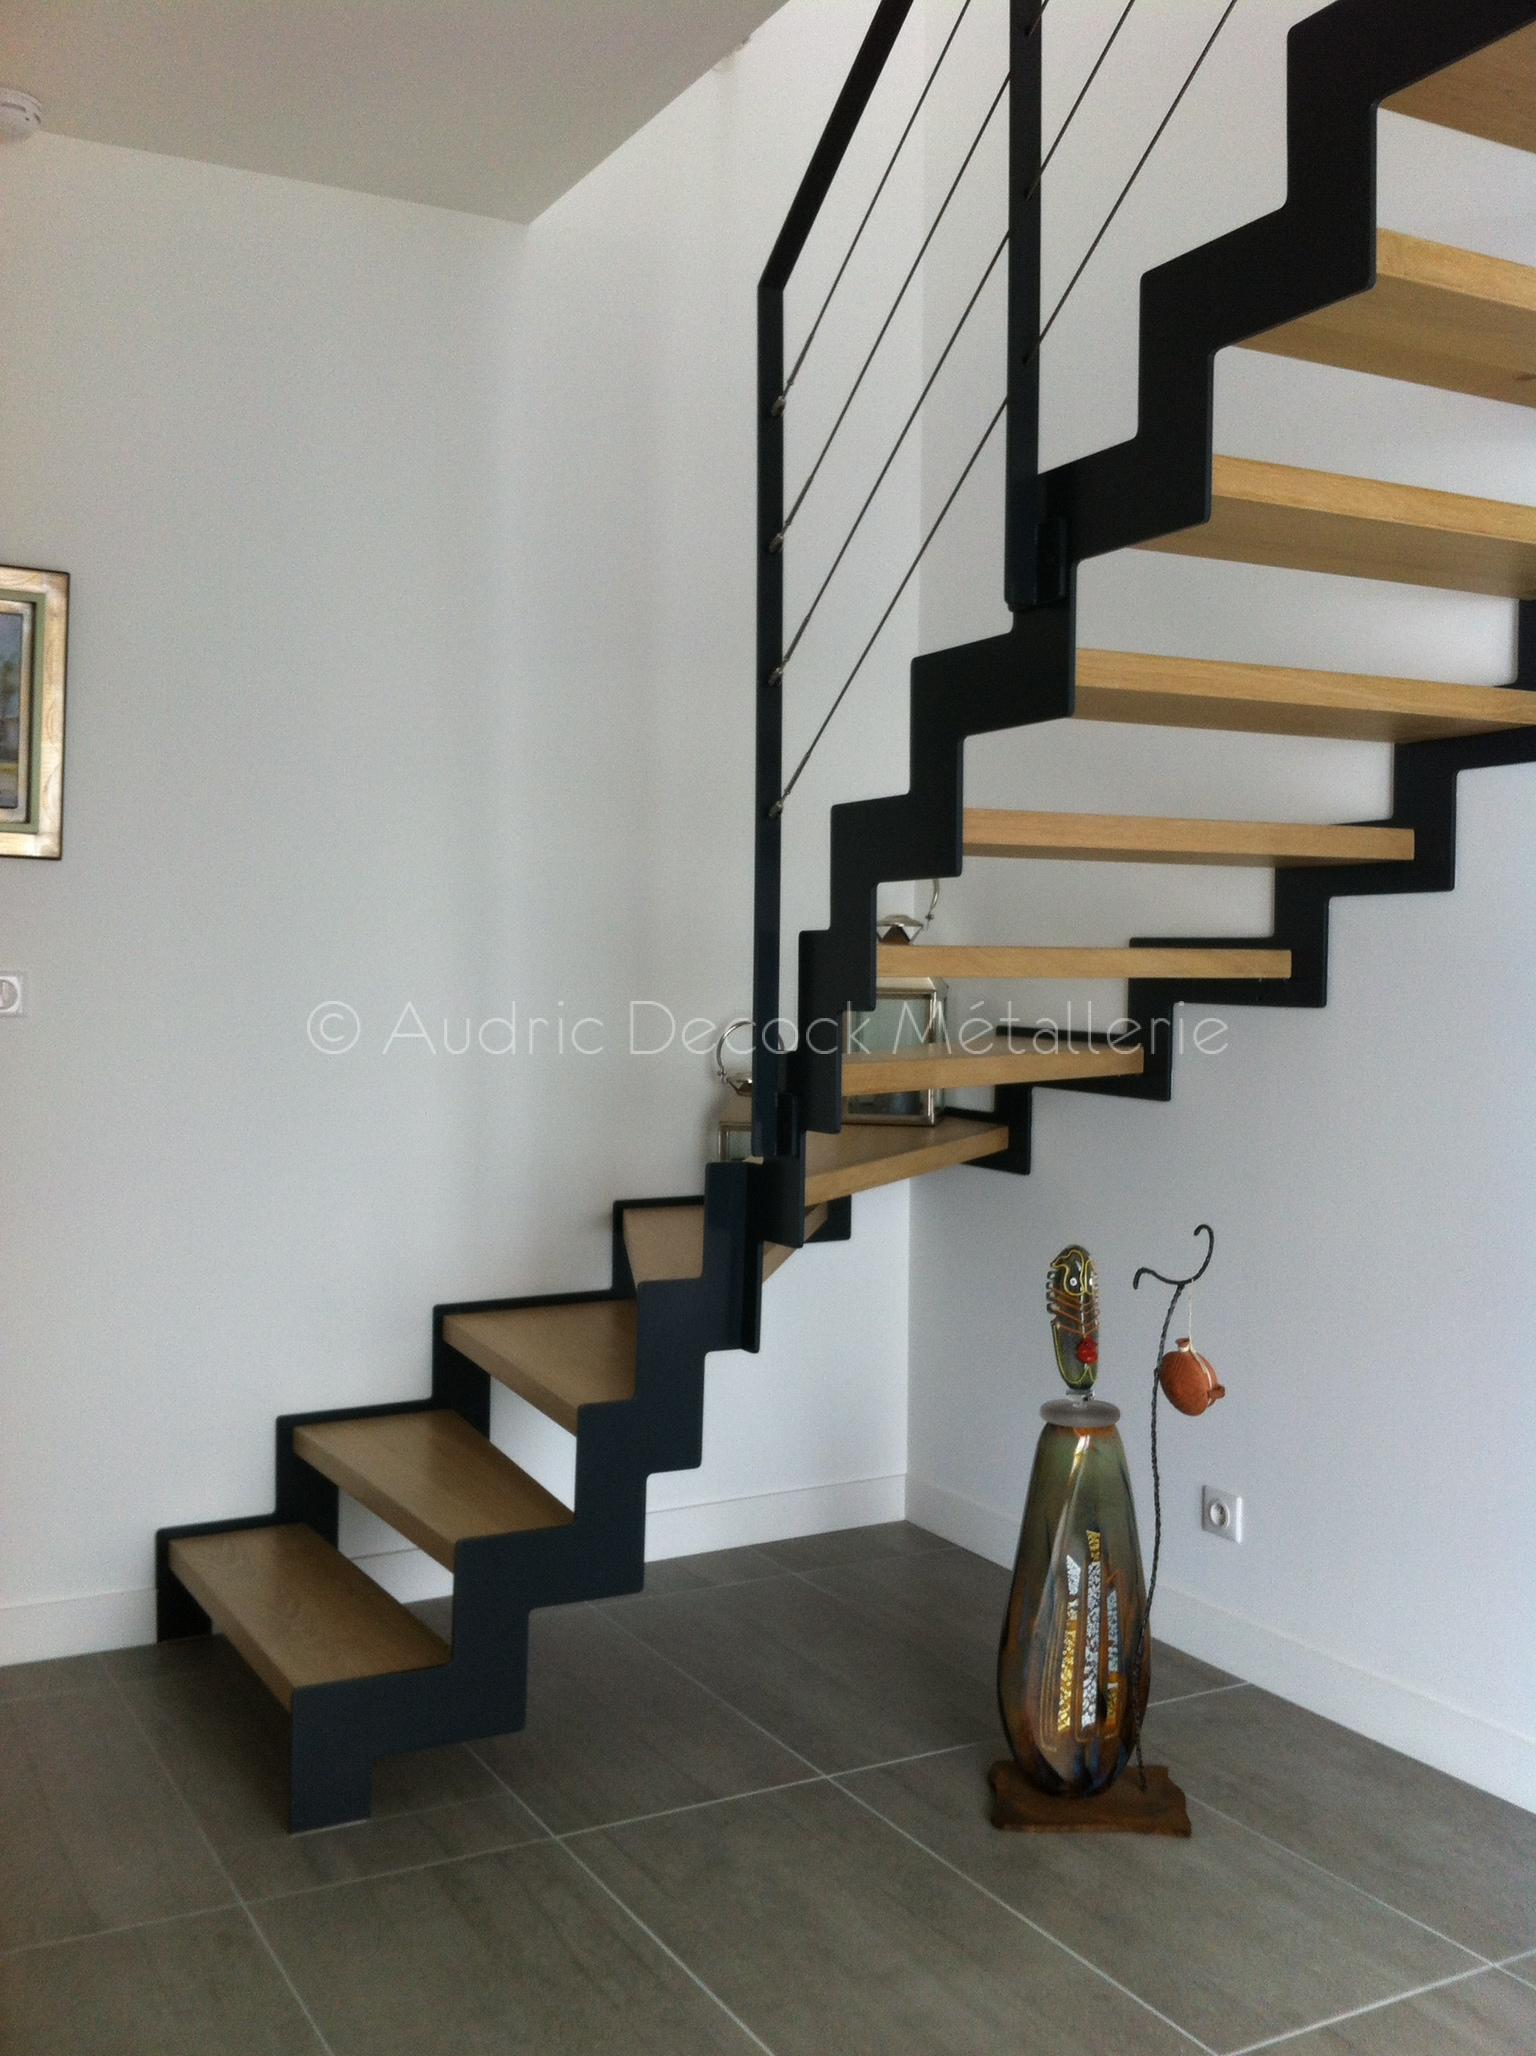 m tallerie lyon verri re sur mesure garde corps escalier m tallique escalier cr maill re. Black Bedroom Furniture Sets. Home Design Ideas